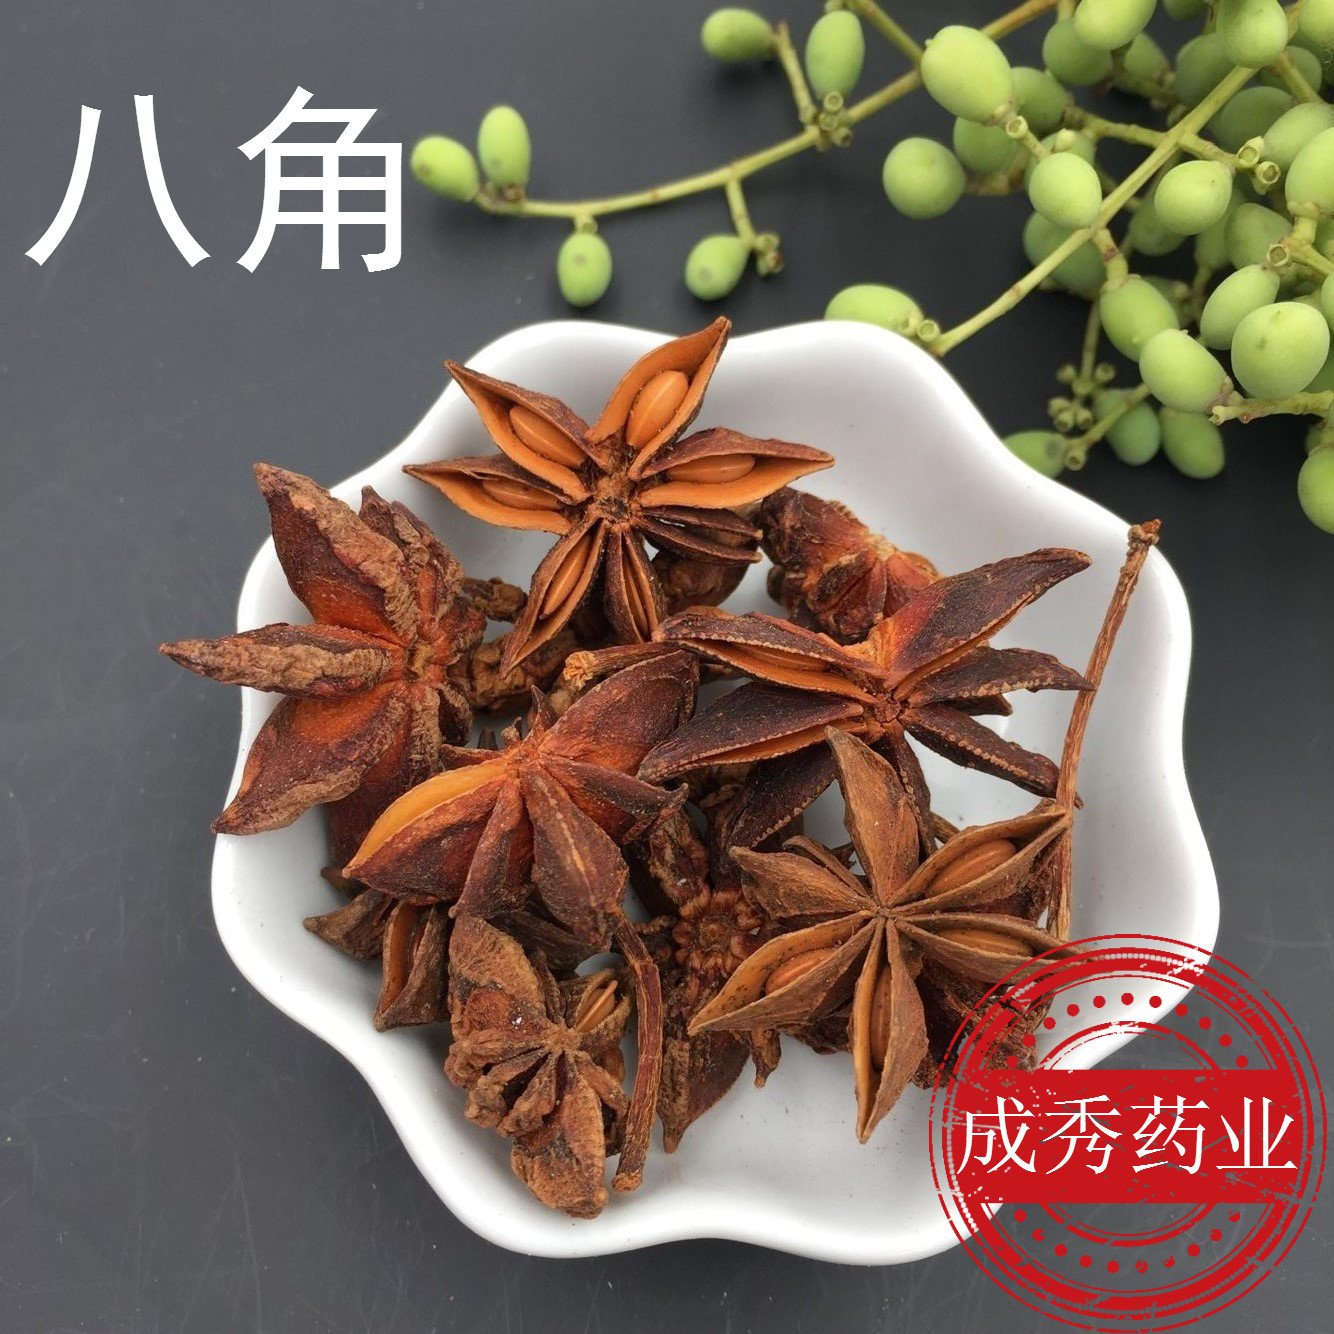 Chinese herbal medicine, star anise, 500g, anise, anise, spices, cooking spices, spices